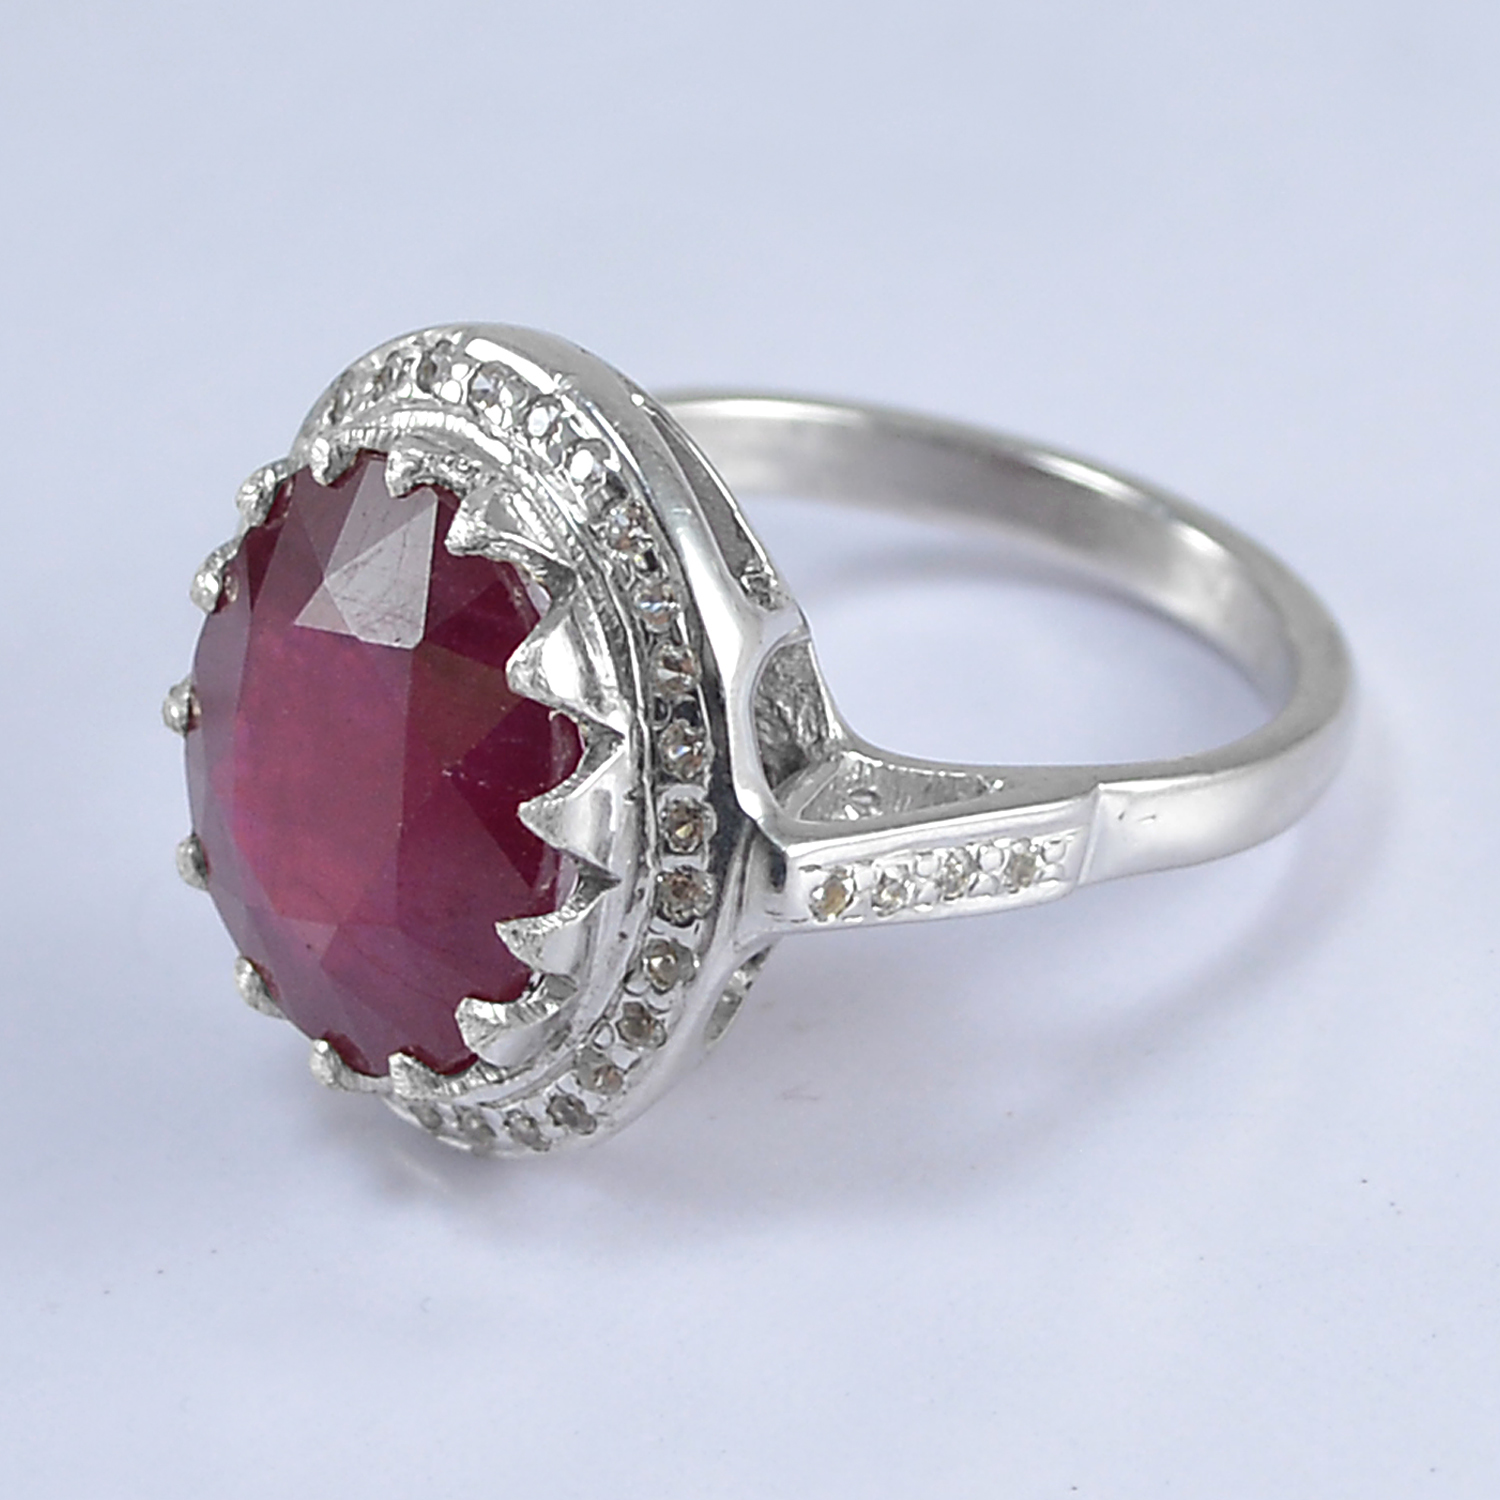 Handmade Jewelry Manufacturer Ruby Gemstone 925 Sterling Silver Ring Sz 6.75 Jaipur Rajasthan India